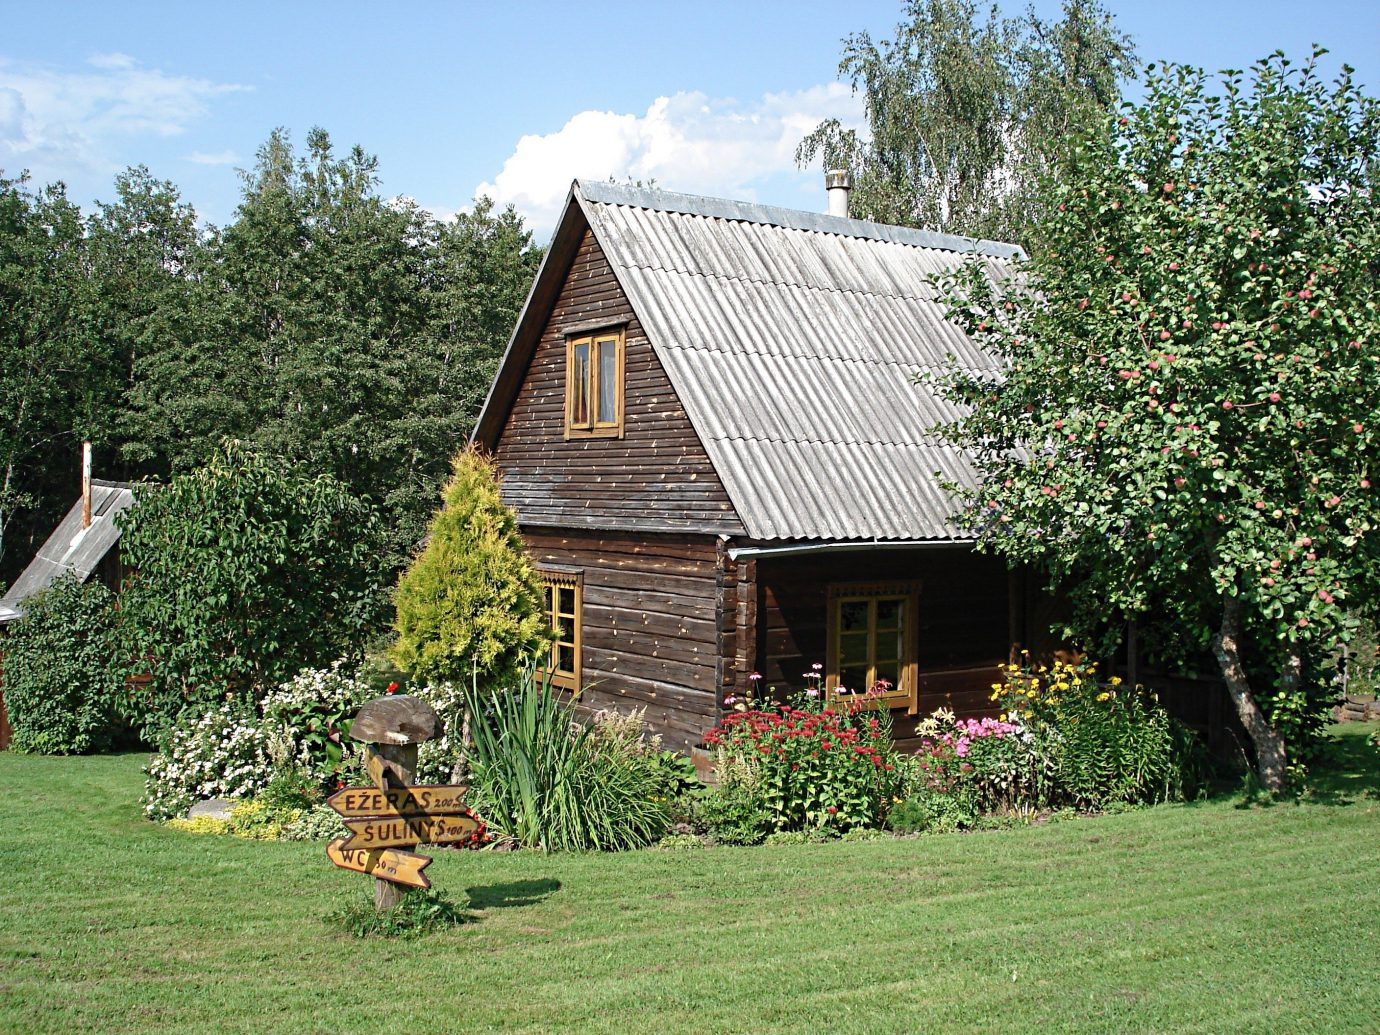 Trip Ideas tree grass outdoor sky house property building home green estate lawn residential area cottage rural area Farm yard Garden backyard log cabin farmhouse barn shed outdoor structure plantation plant lush